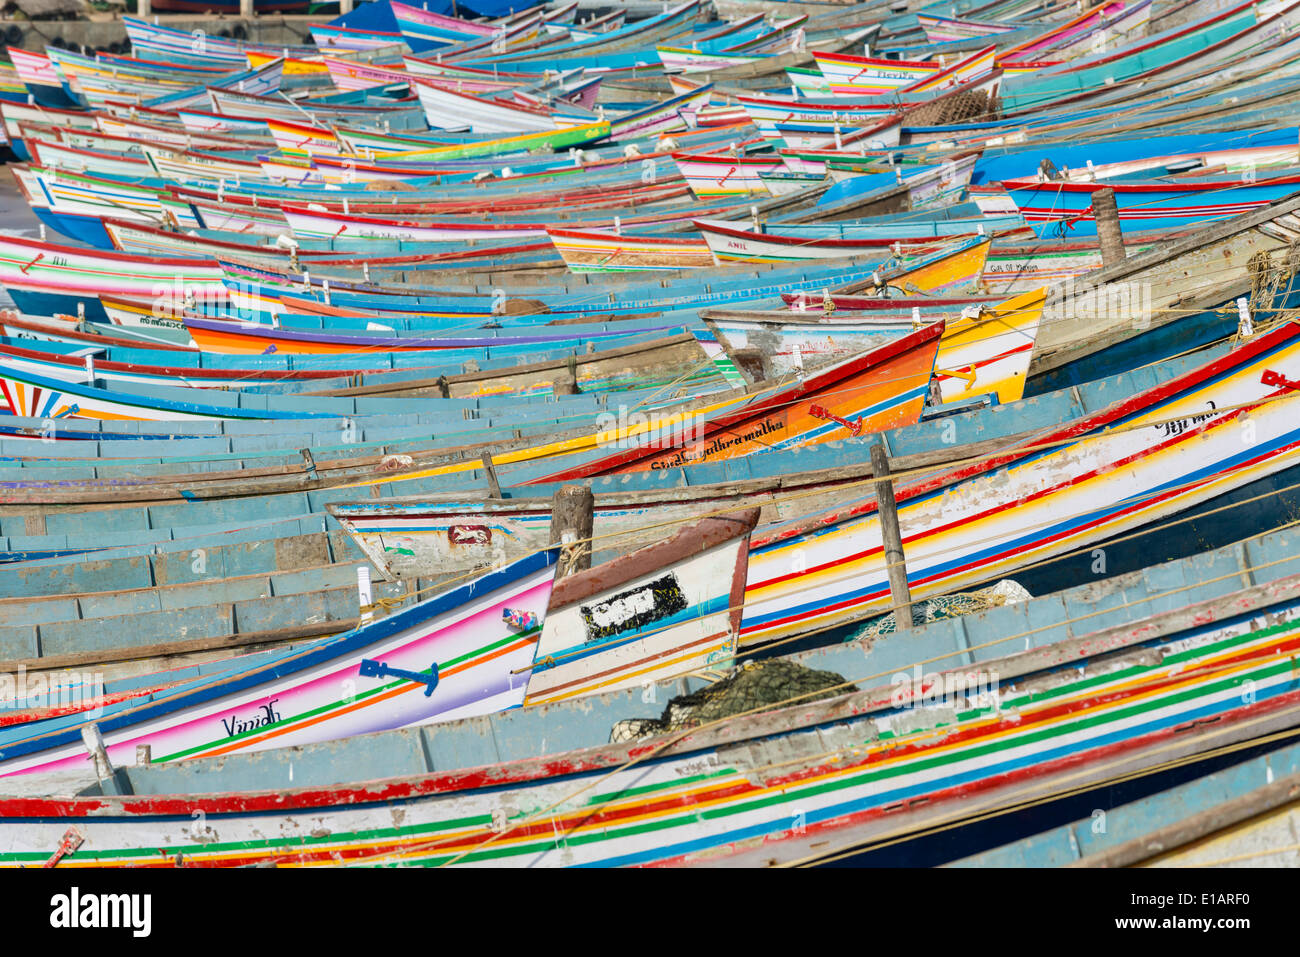 Colorful fishing boats in the harbour, Vizhinjam, Kerala, India - Stock Image